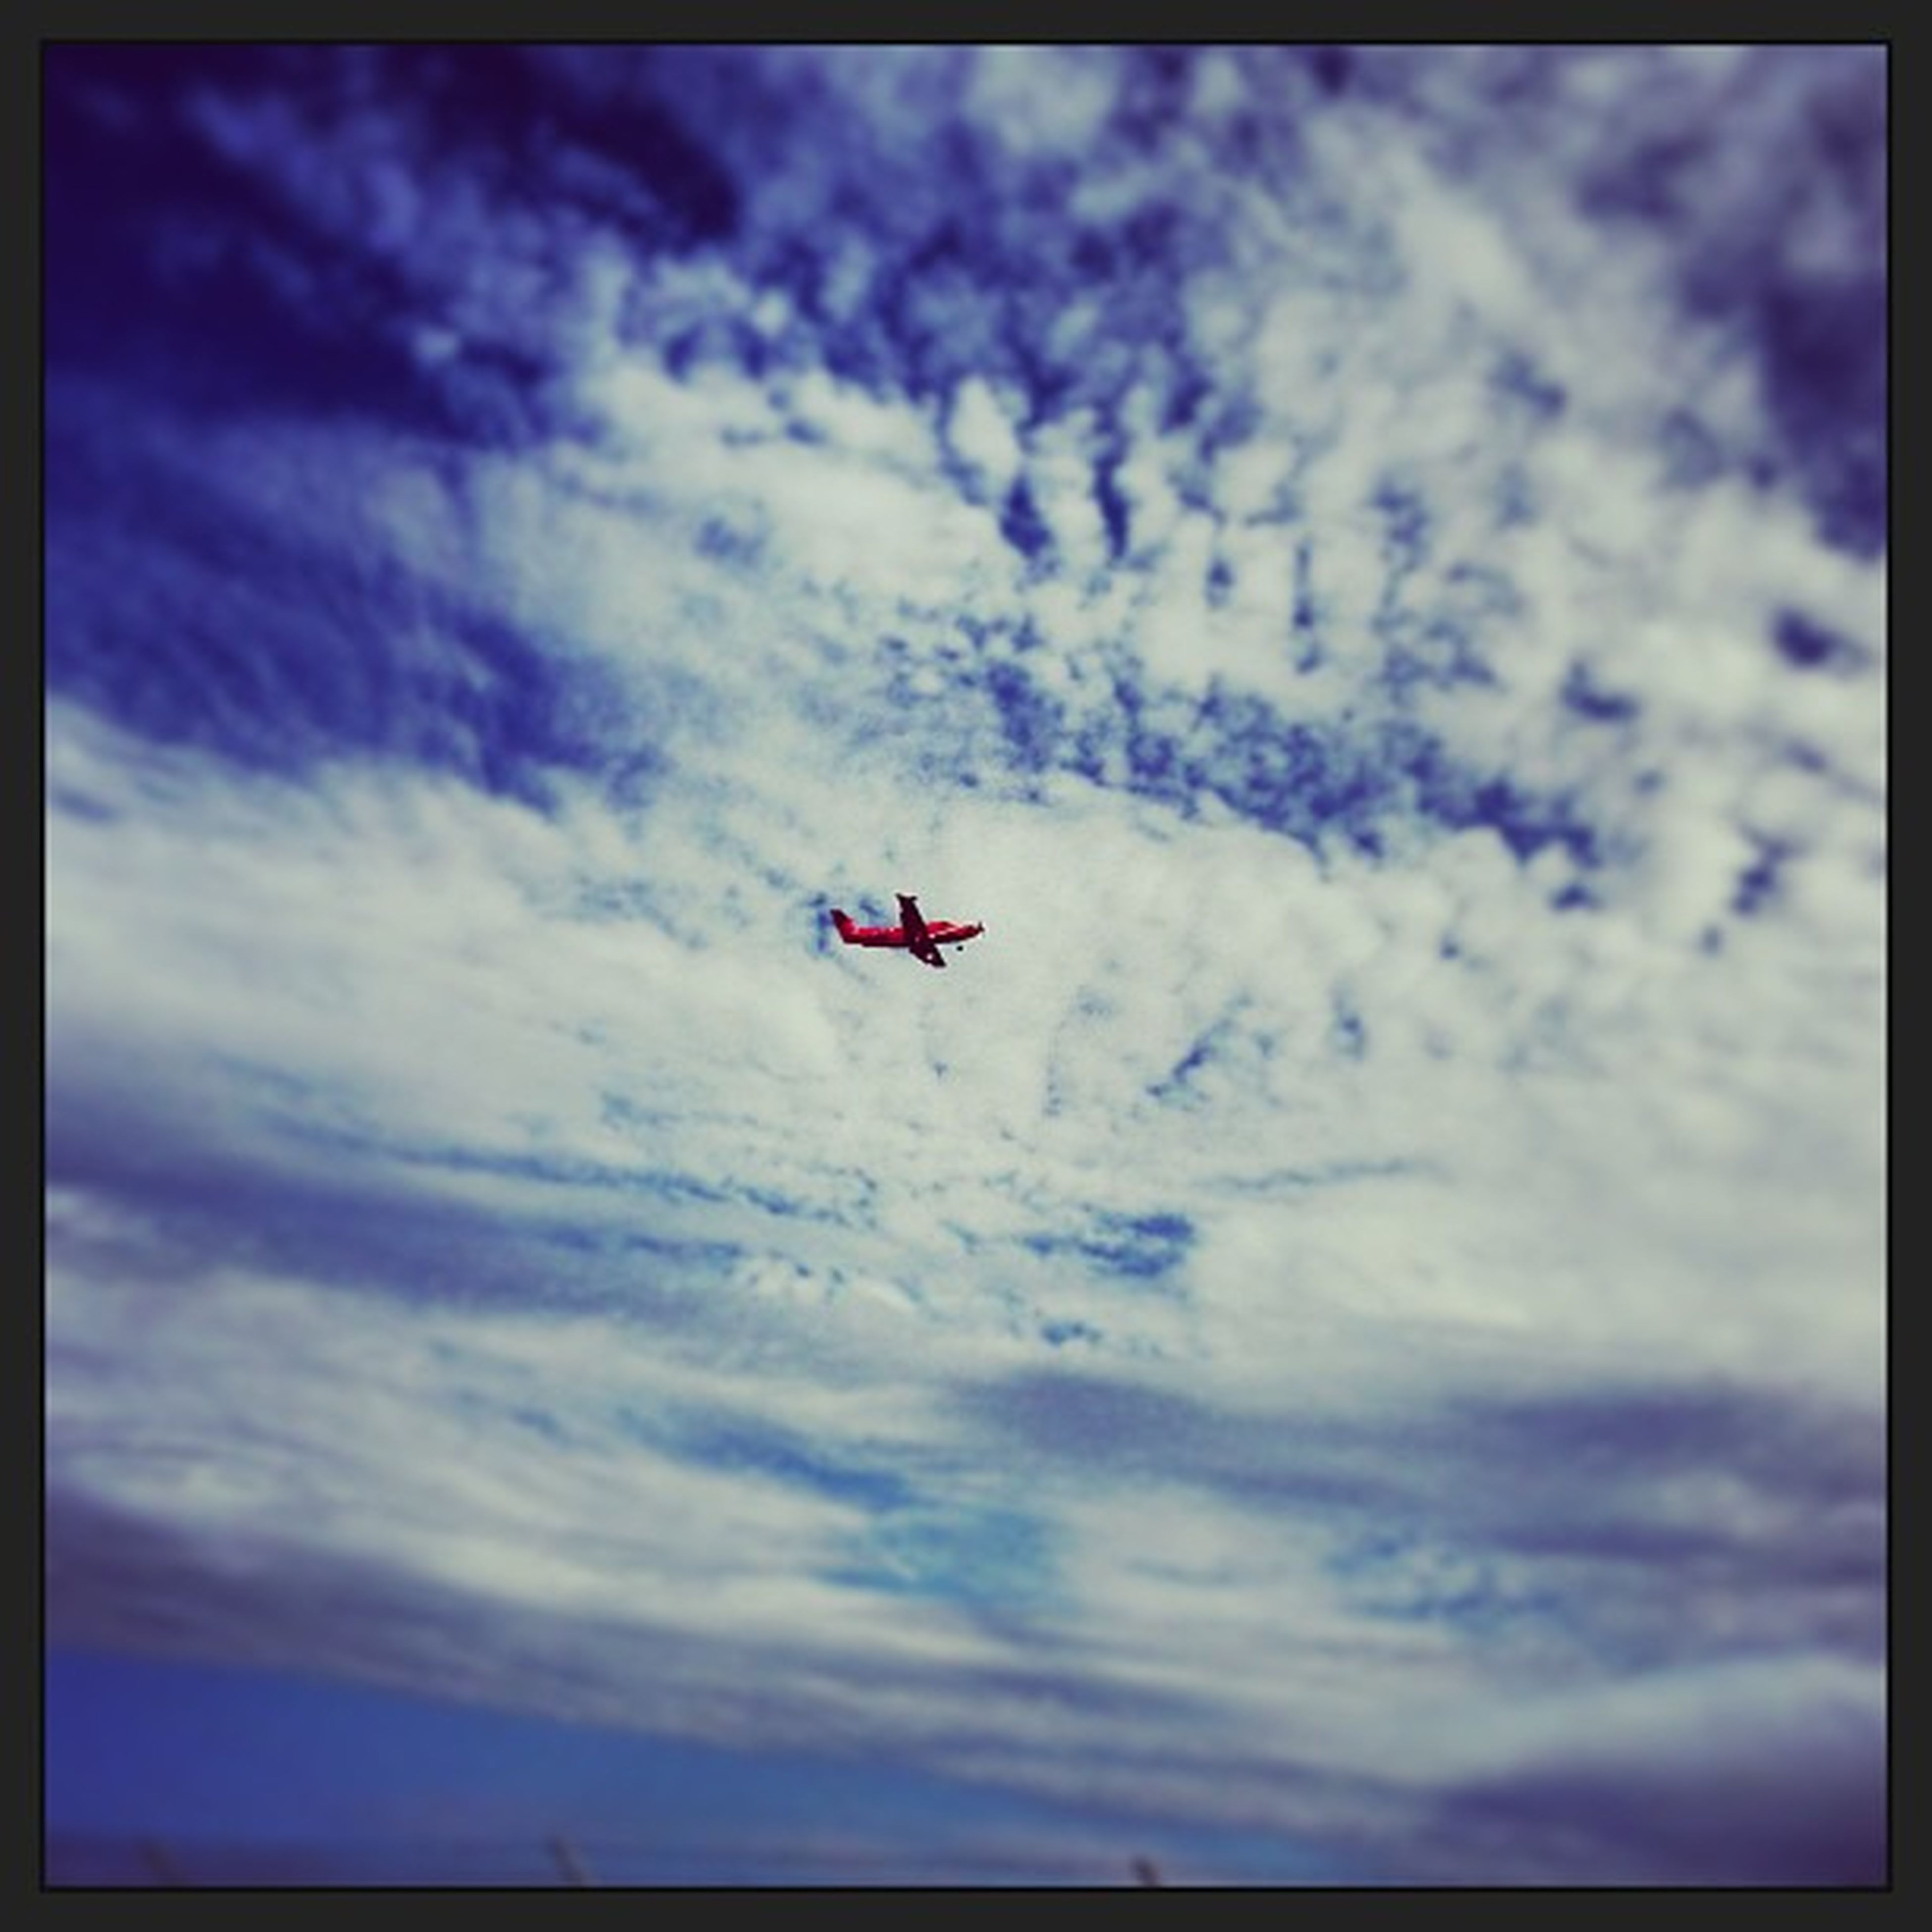 transportation, flying, mode of transport, air vehicle, airplane, mid-air, low angle view, sky, cloud - sky, cloudy, on the move, cloud, travel, journey, transfer print, day, helicopter, motion, auto post production filter, outdoors